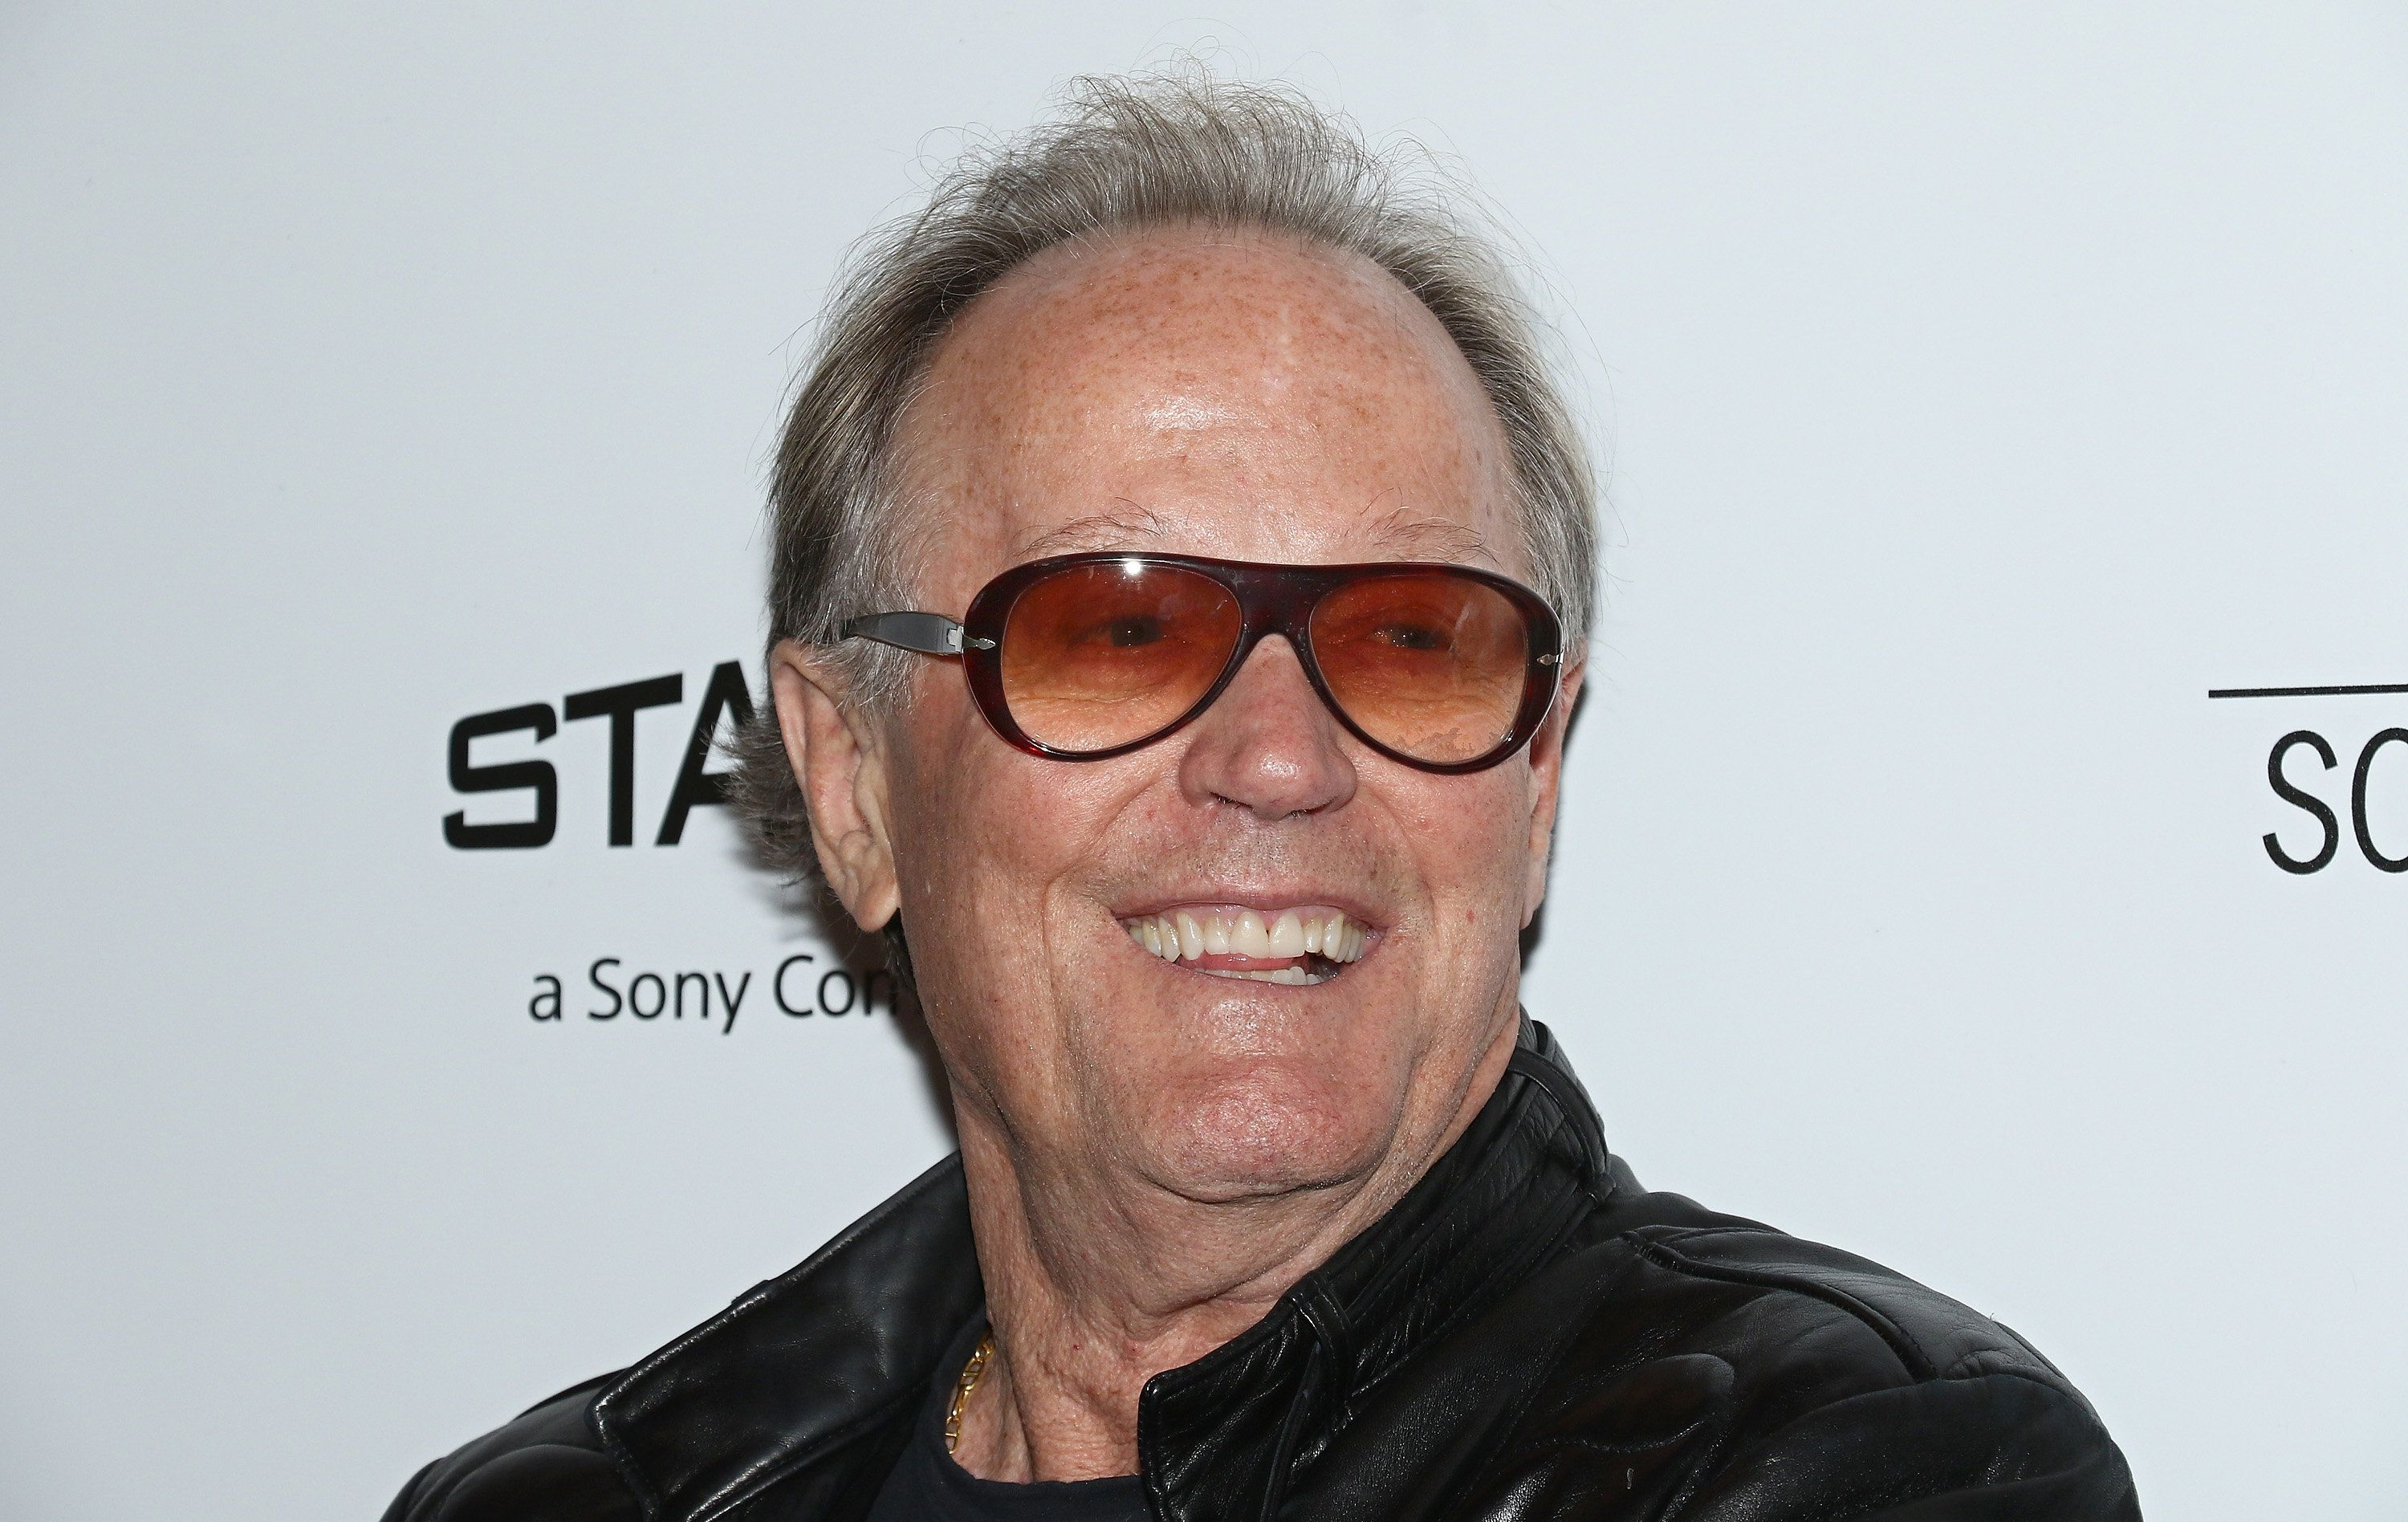 Sony Condemns Peter Fonda, but Will Still Release New Film